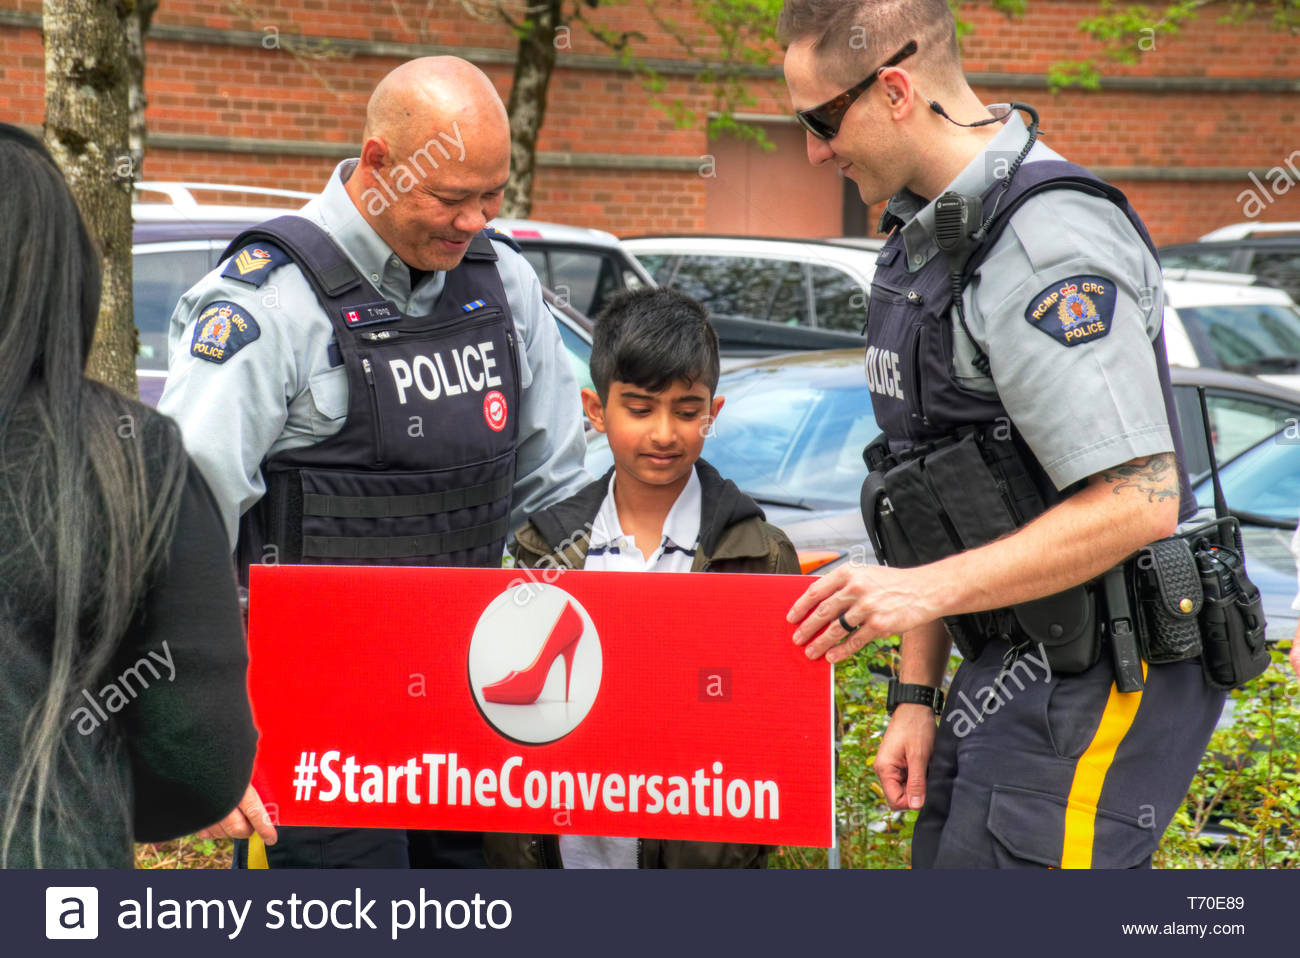 RCMP officers and  pre-teen male holding a red sign with an image of a red high heeled shoe reading #StartTheConversation for gender equality. - Stock Image